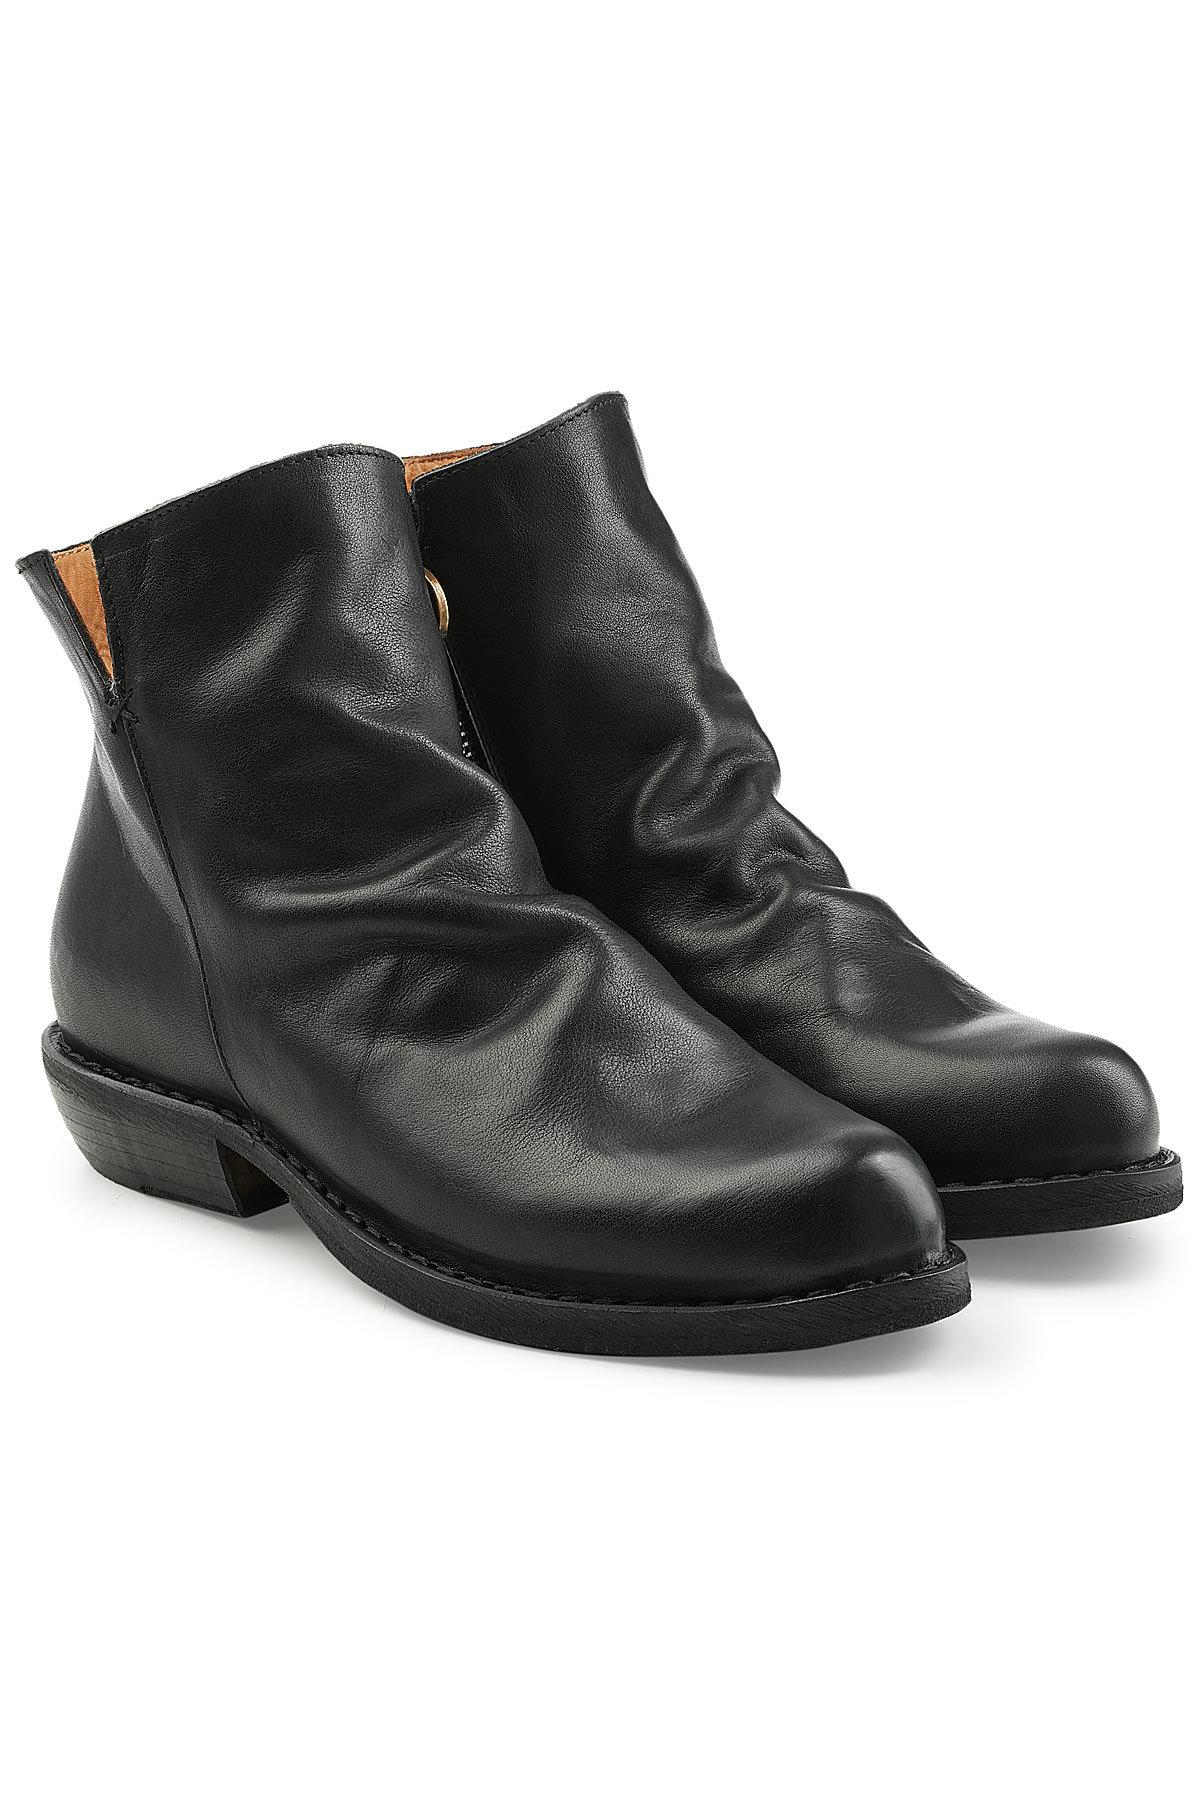 buy cheap pick a best original Fiorentini + Baker Leather Ankle Boots SC1S6IdeeD